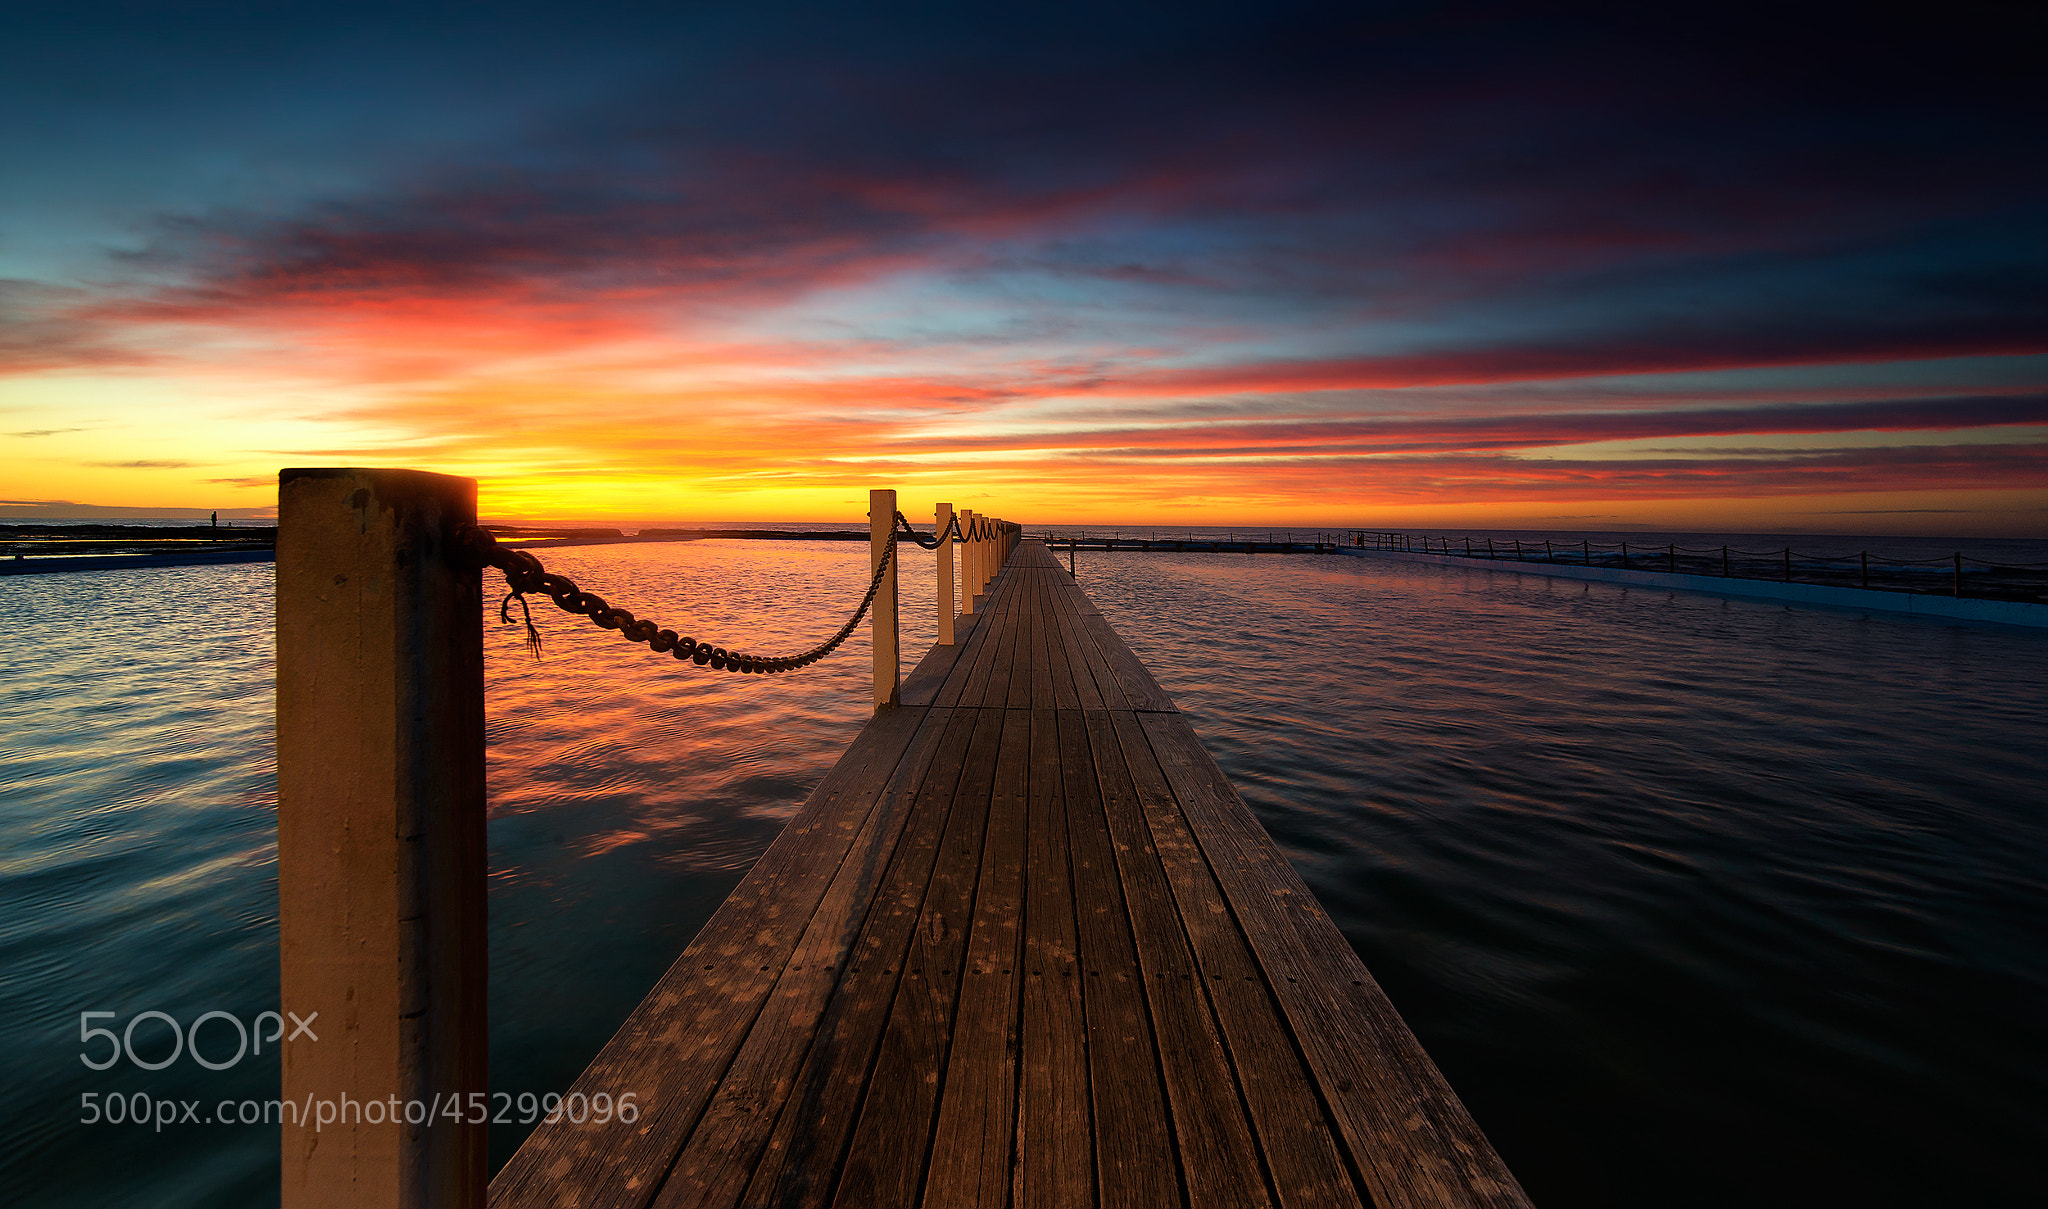 Photograph Narrabeen beach by Goff Kitsawad on 500px